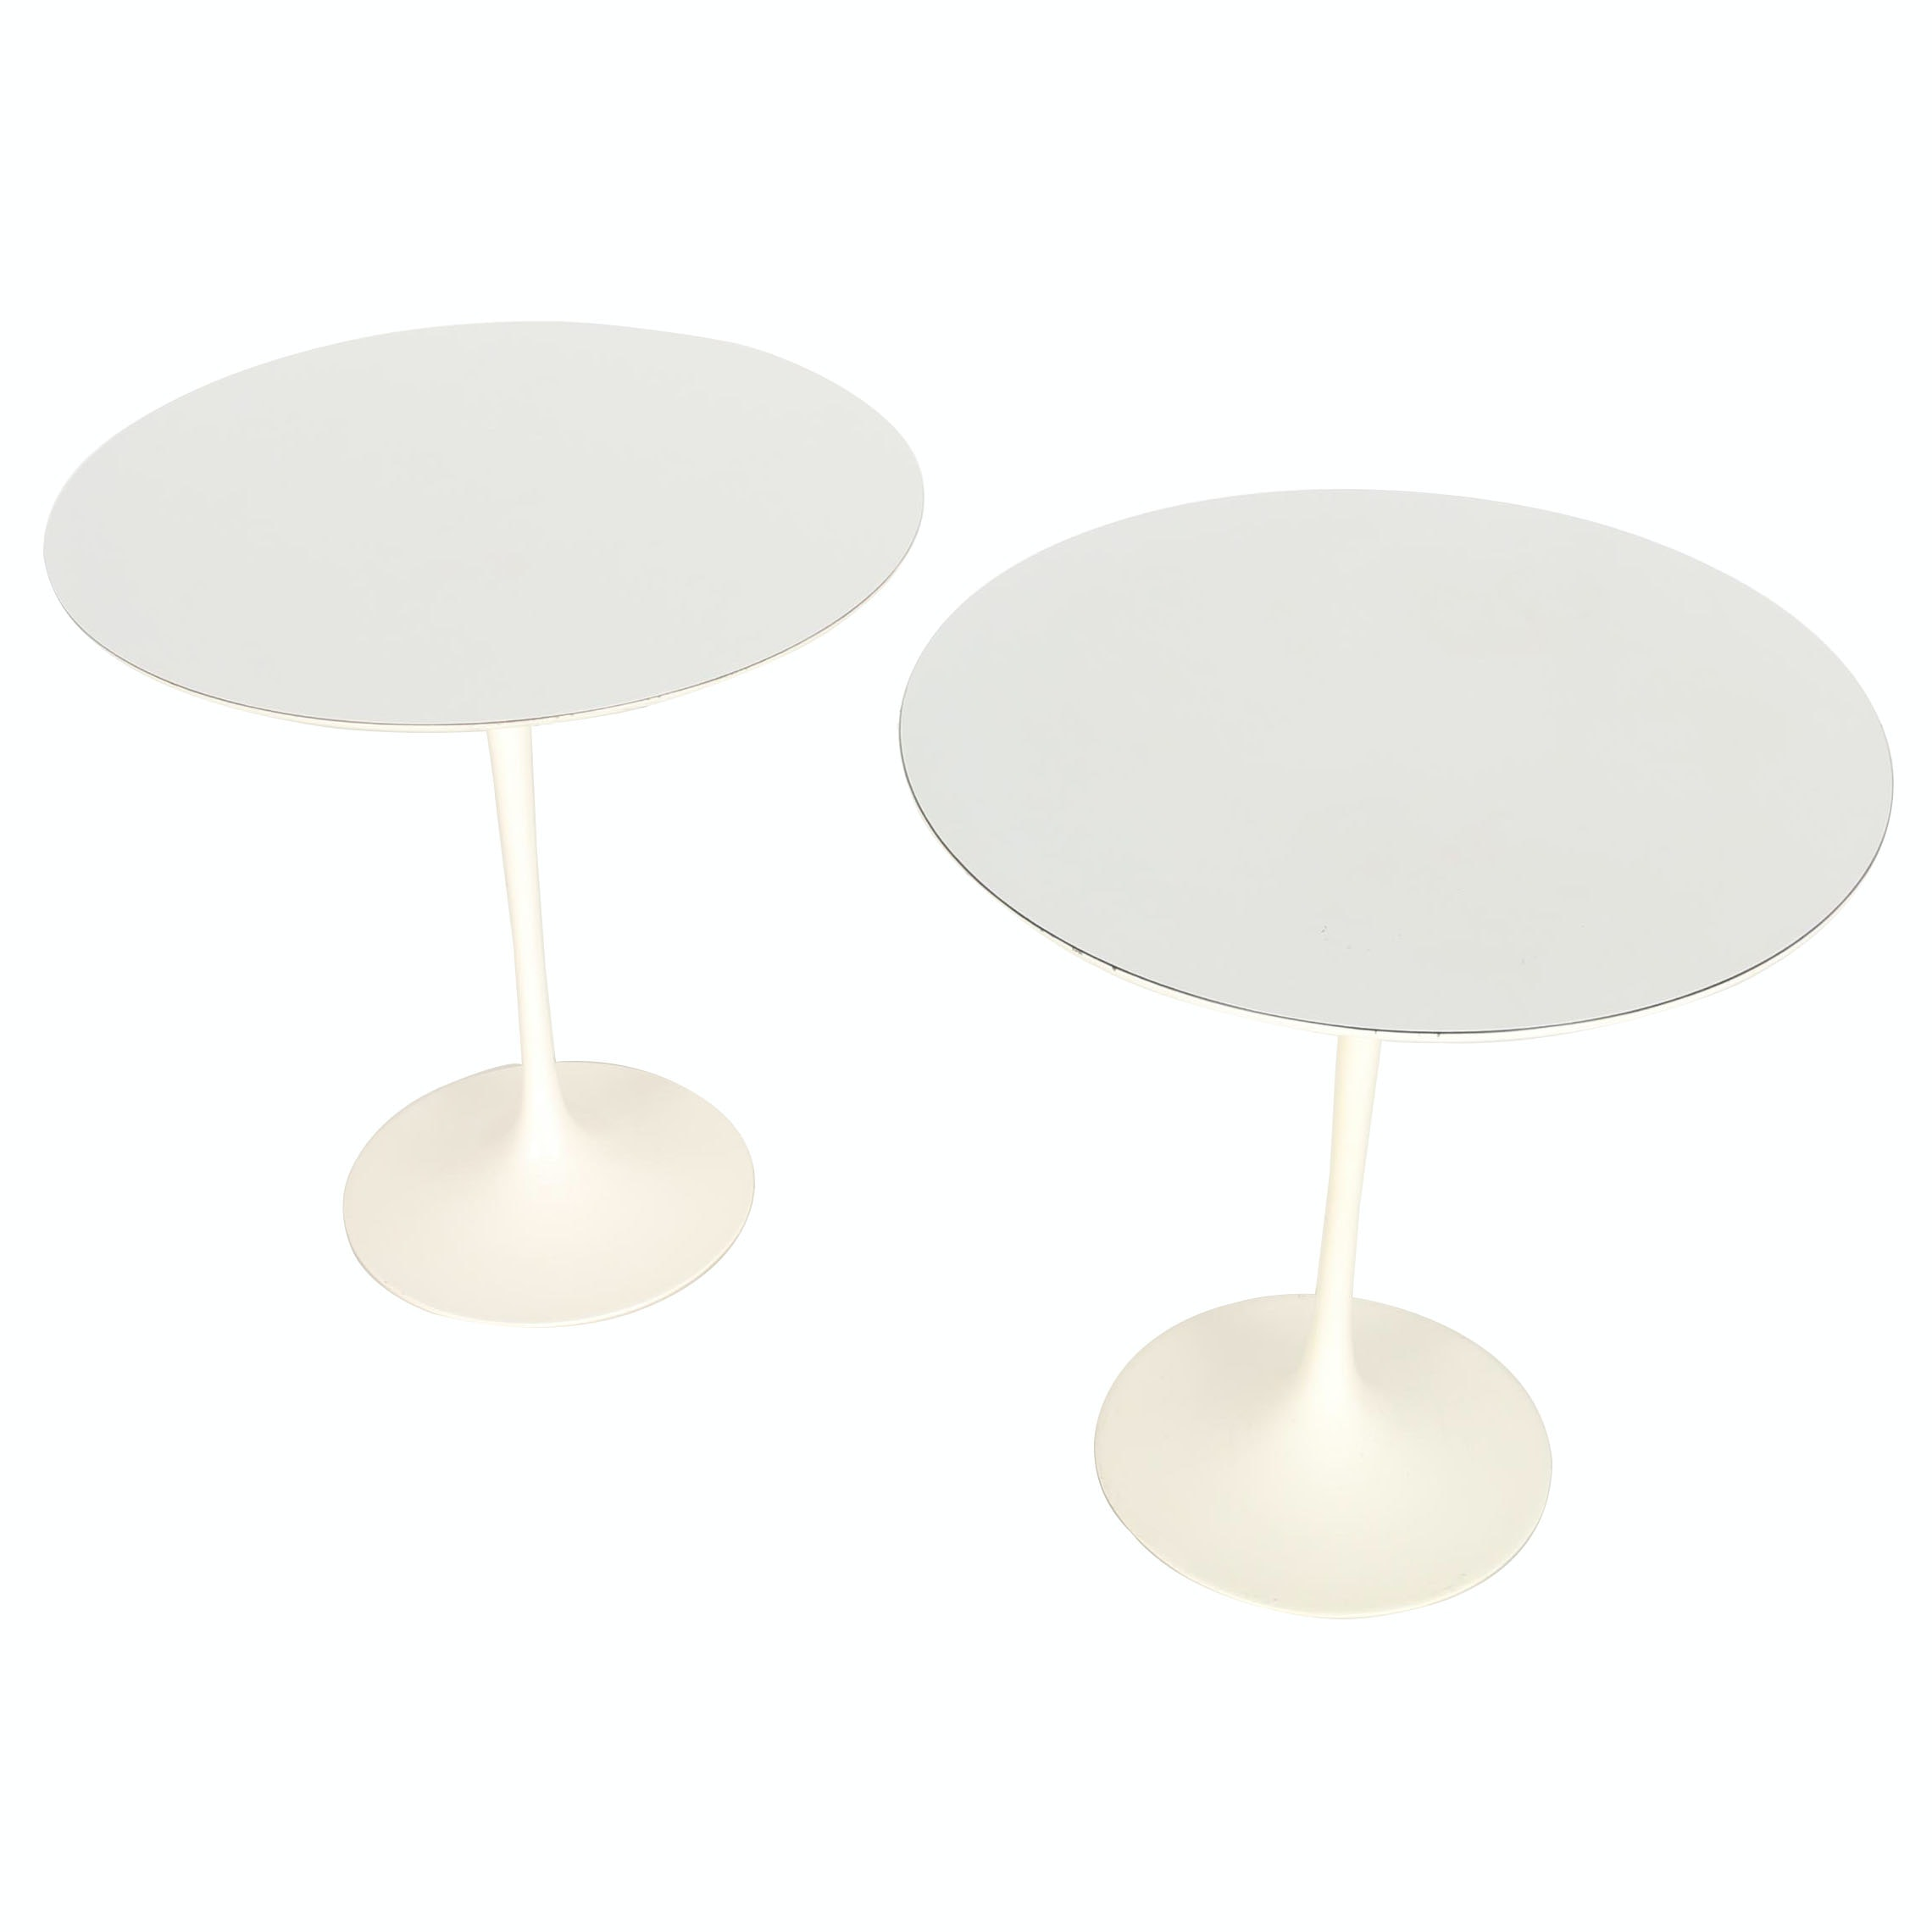 Vintage Modernist Side Tables by Eero Saarinen for Knoll International With Provenance